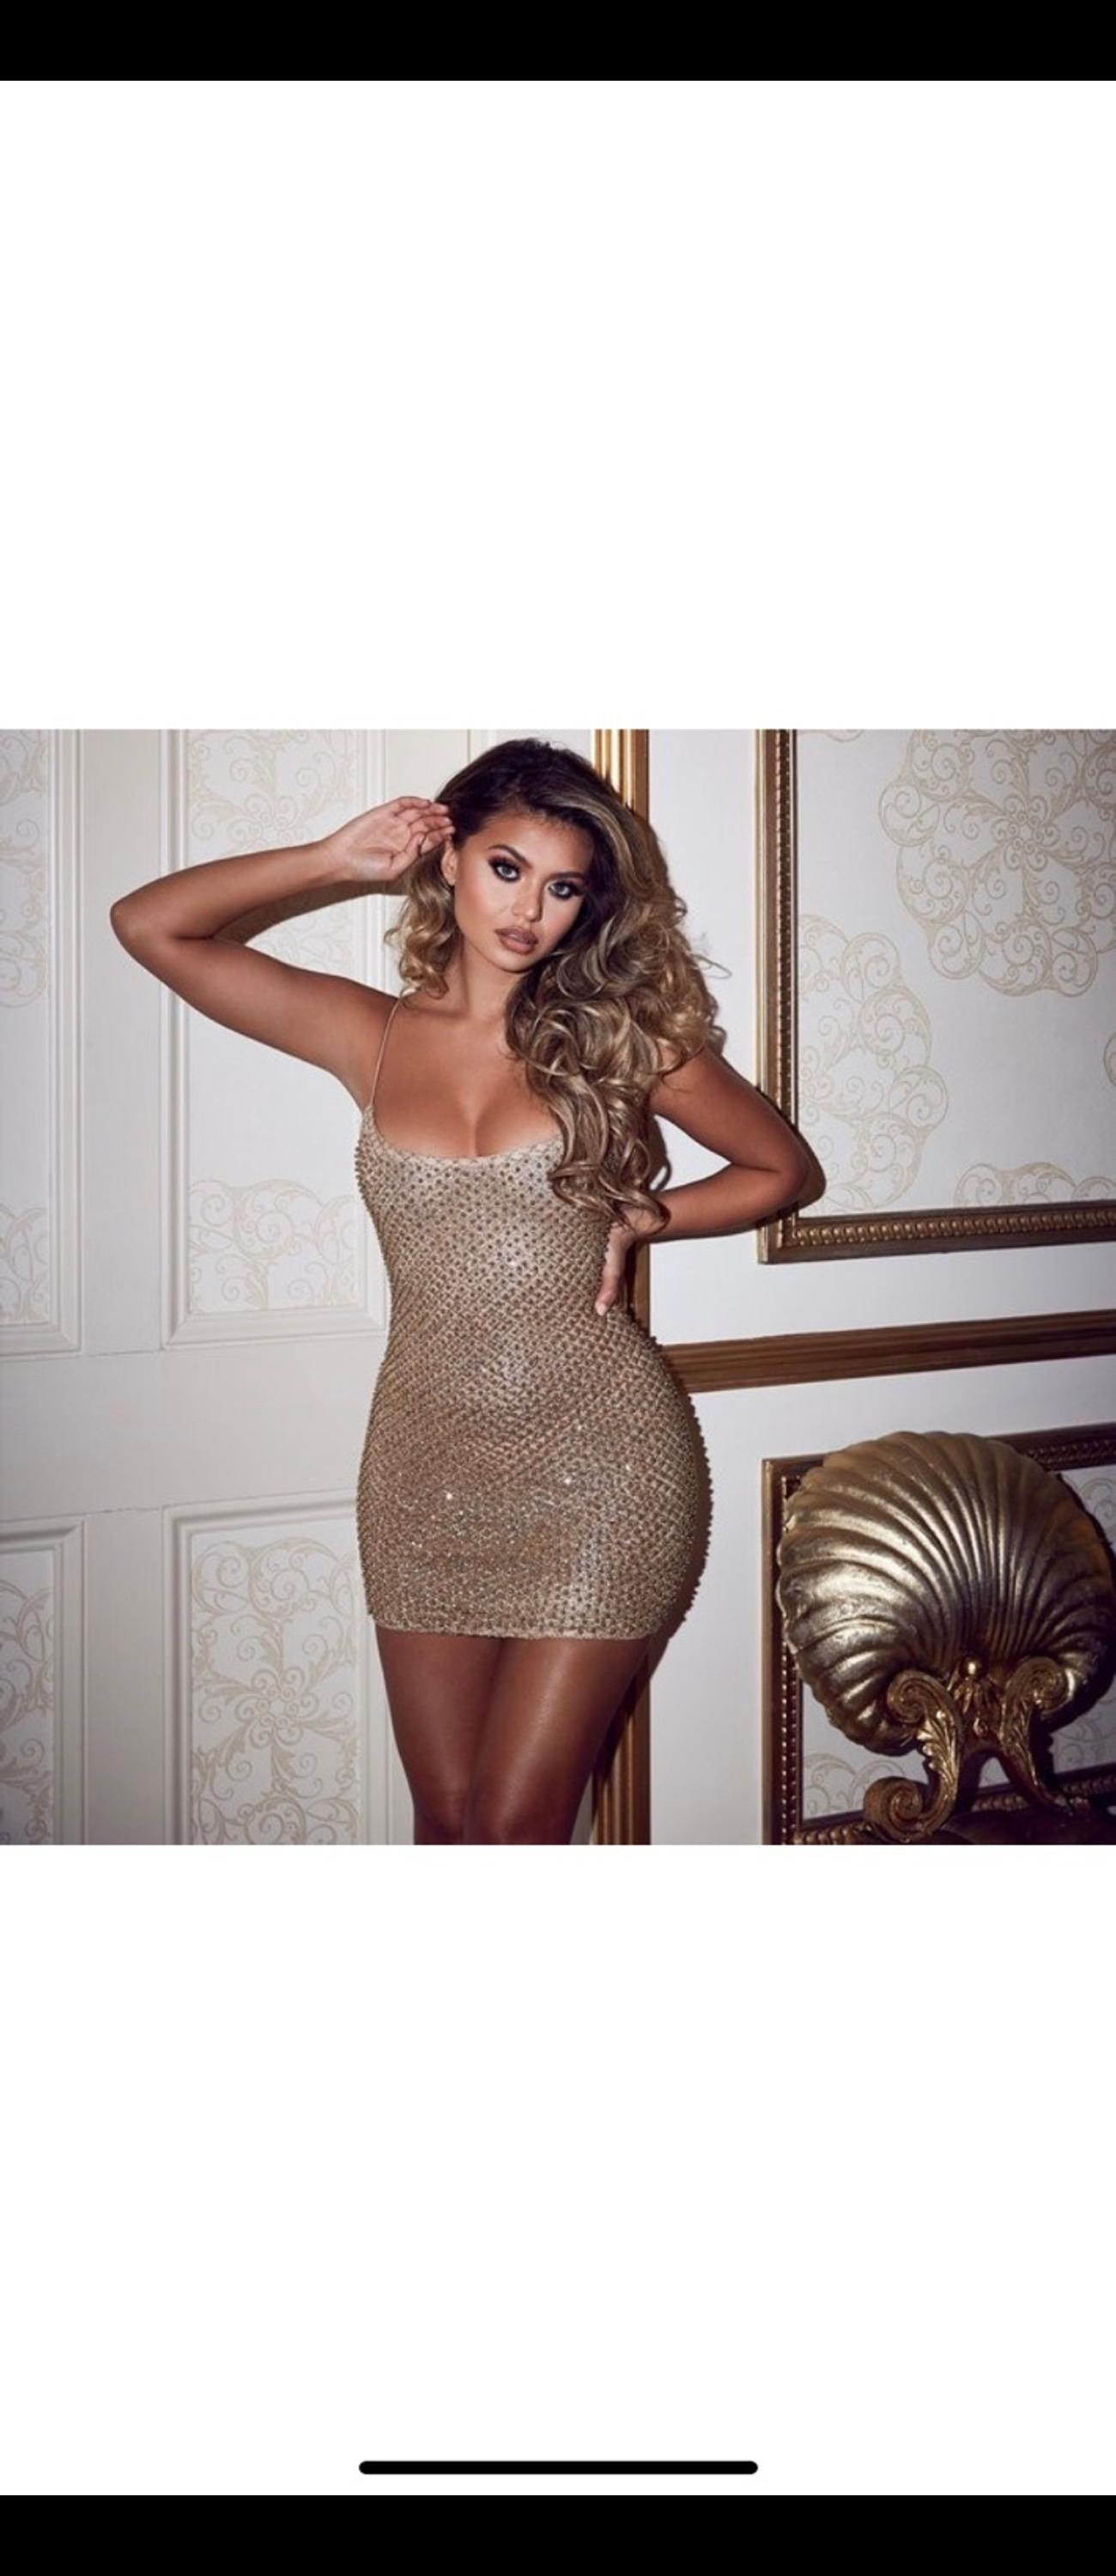 Oh Polly Drop A Glint Embellished Mini Dress In N1 Hackney For 40 00 For Sale Shpock